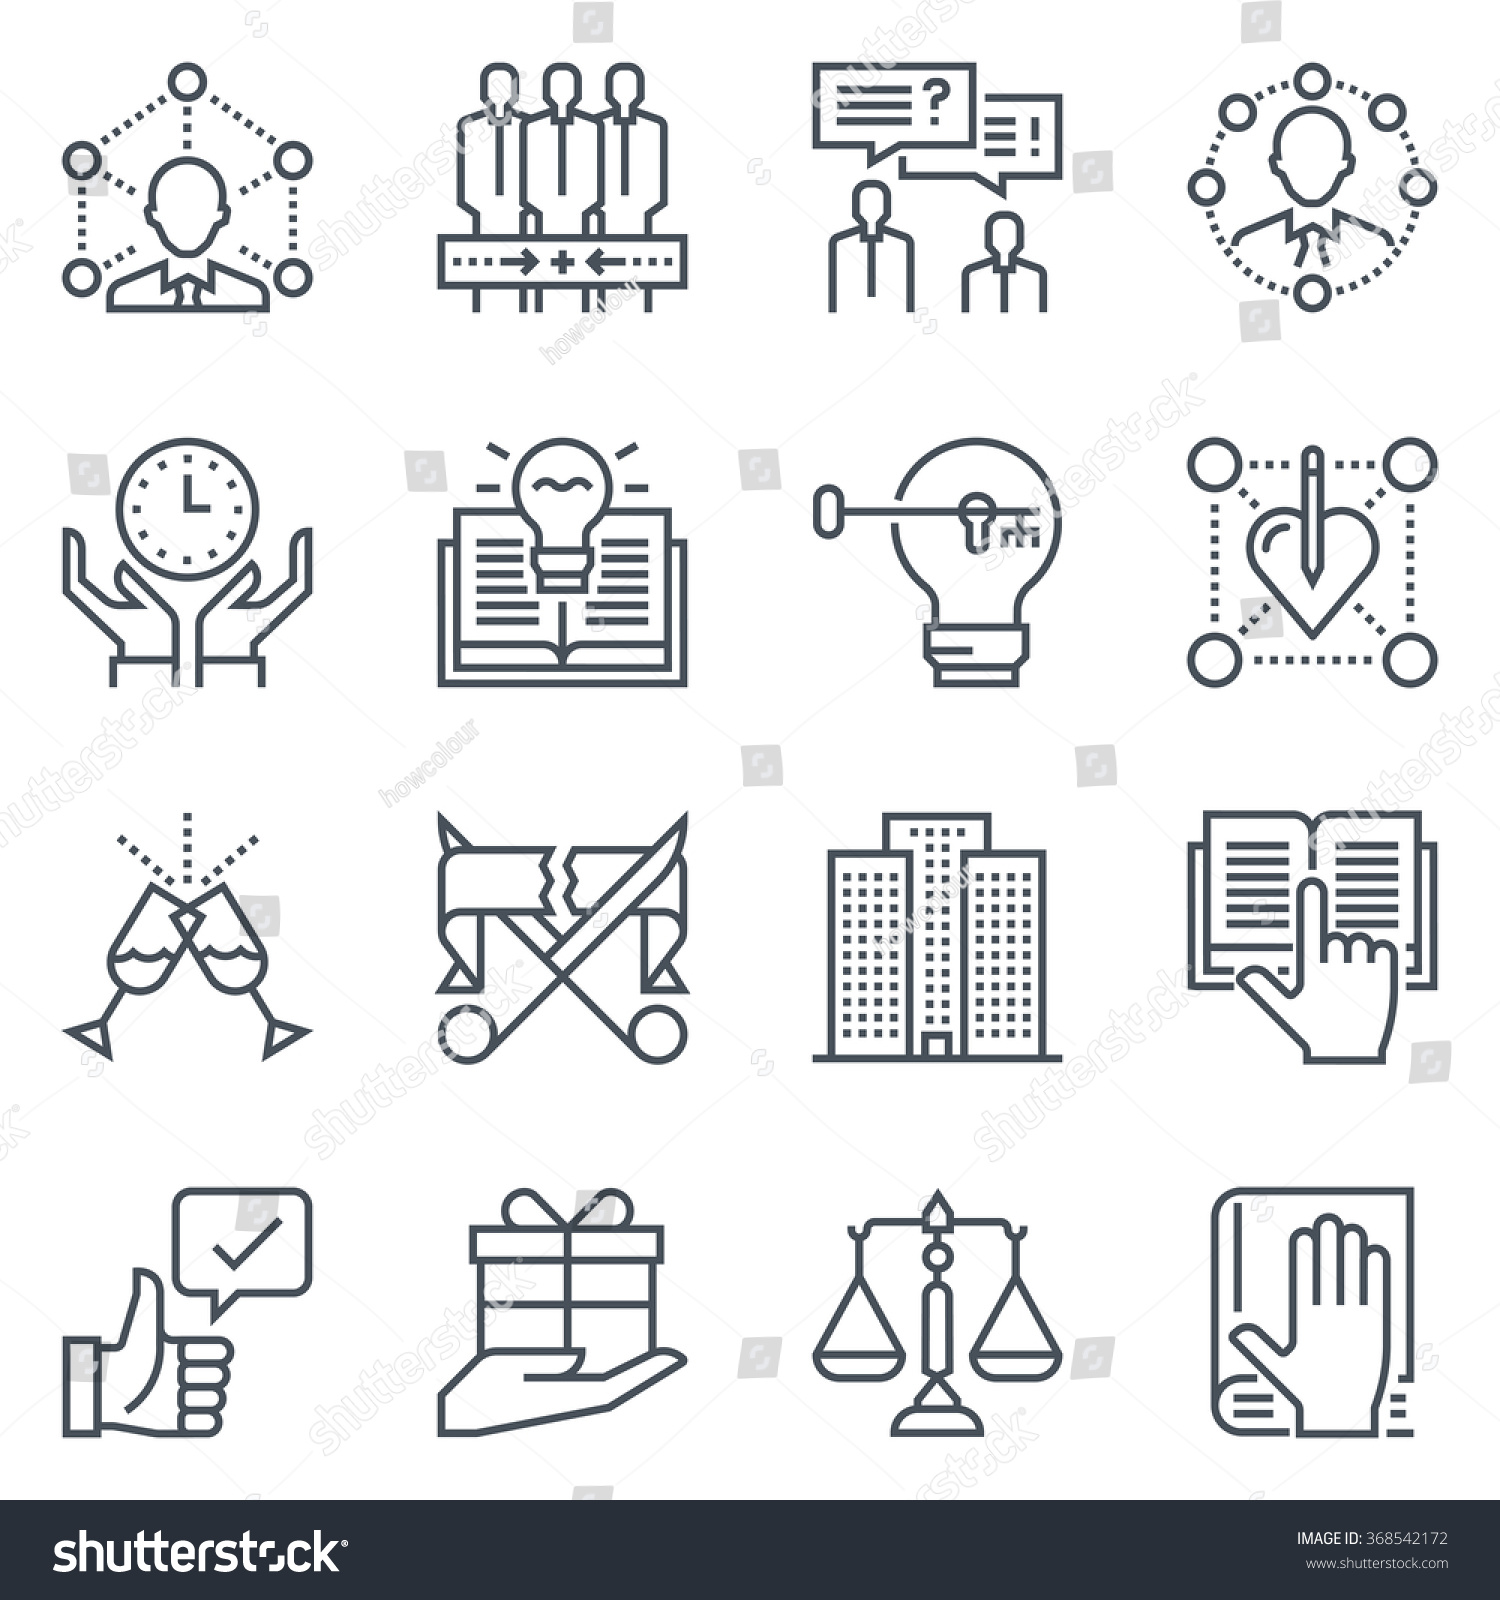 business employment icon set suitable info stock vector  business and employment icon set suitable for info graphics websites and print media black